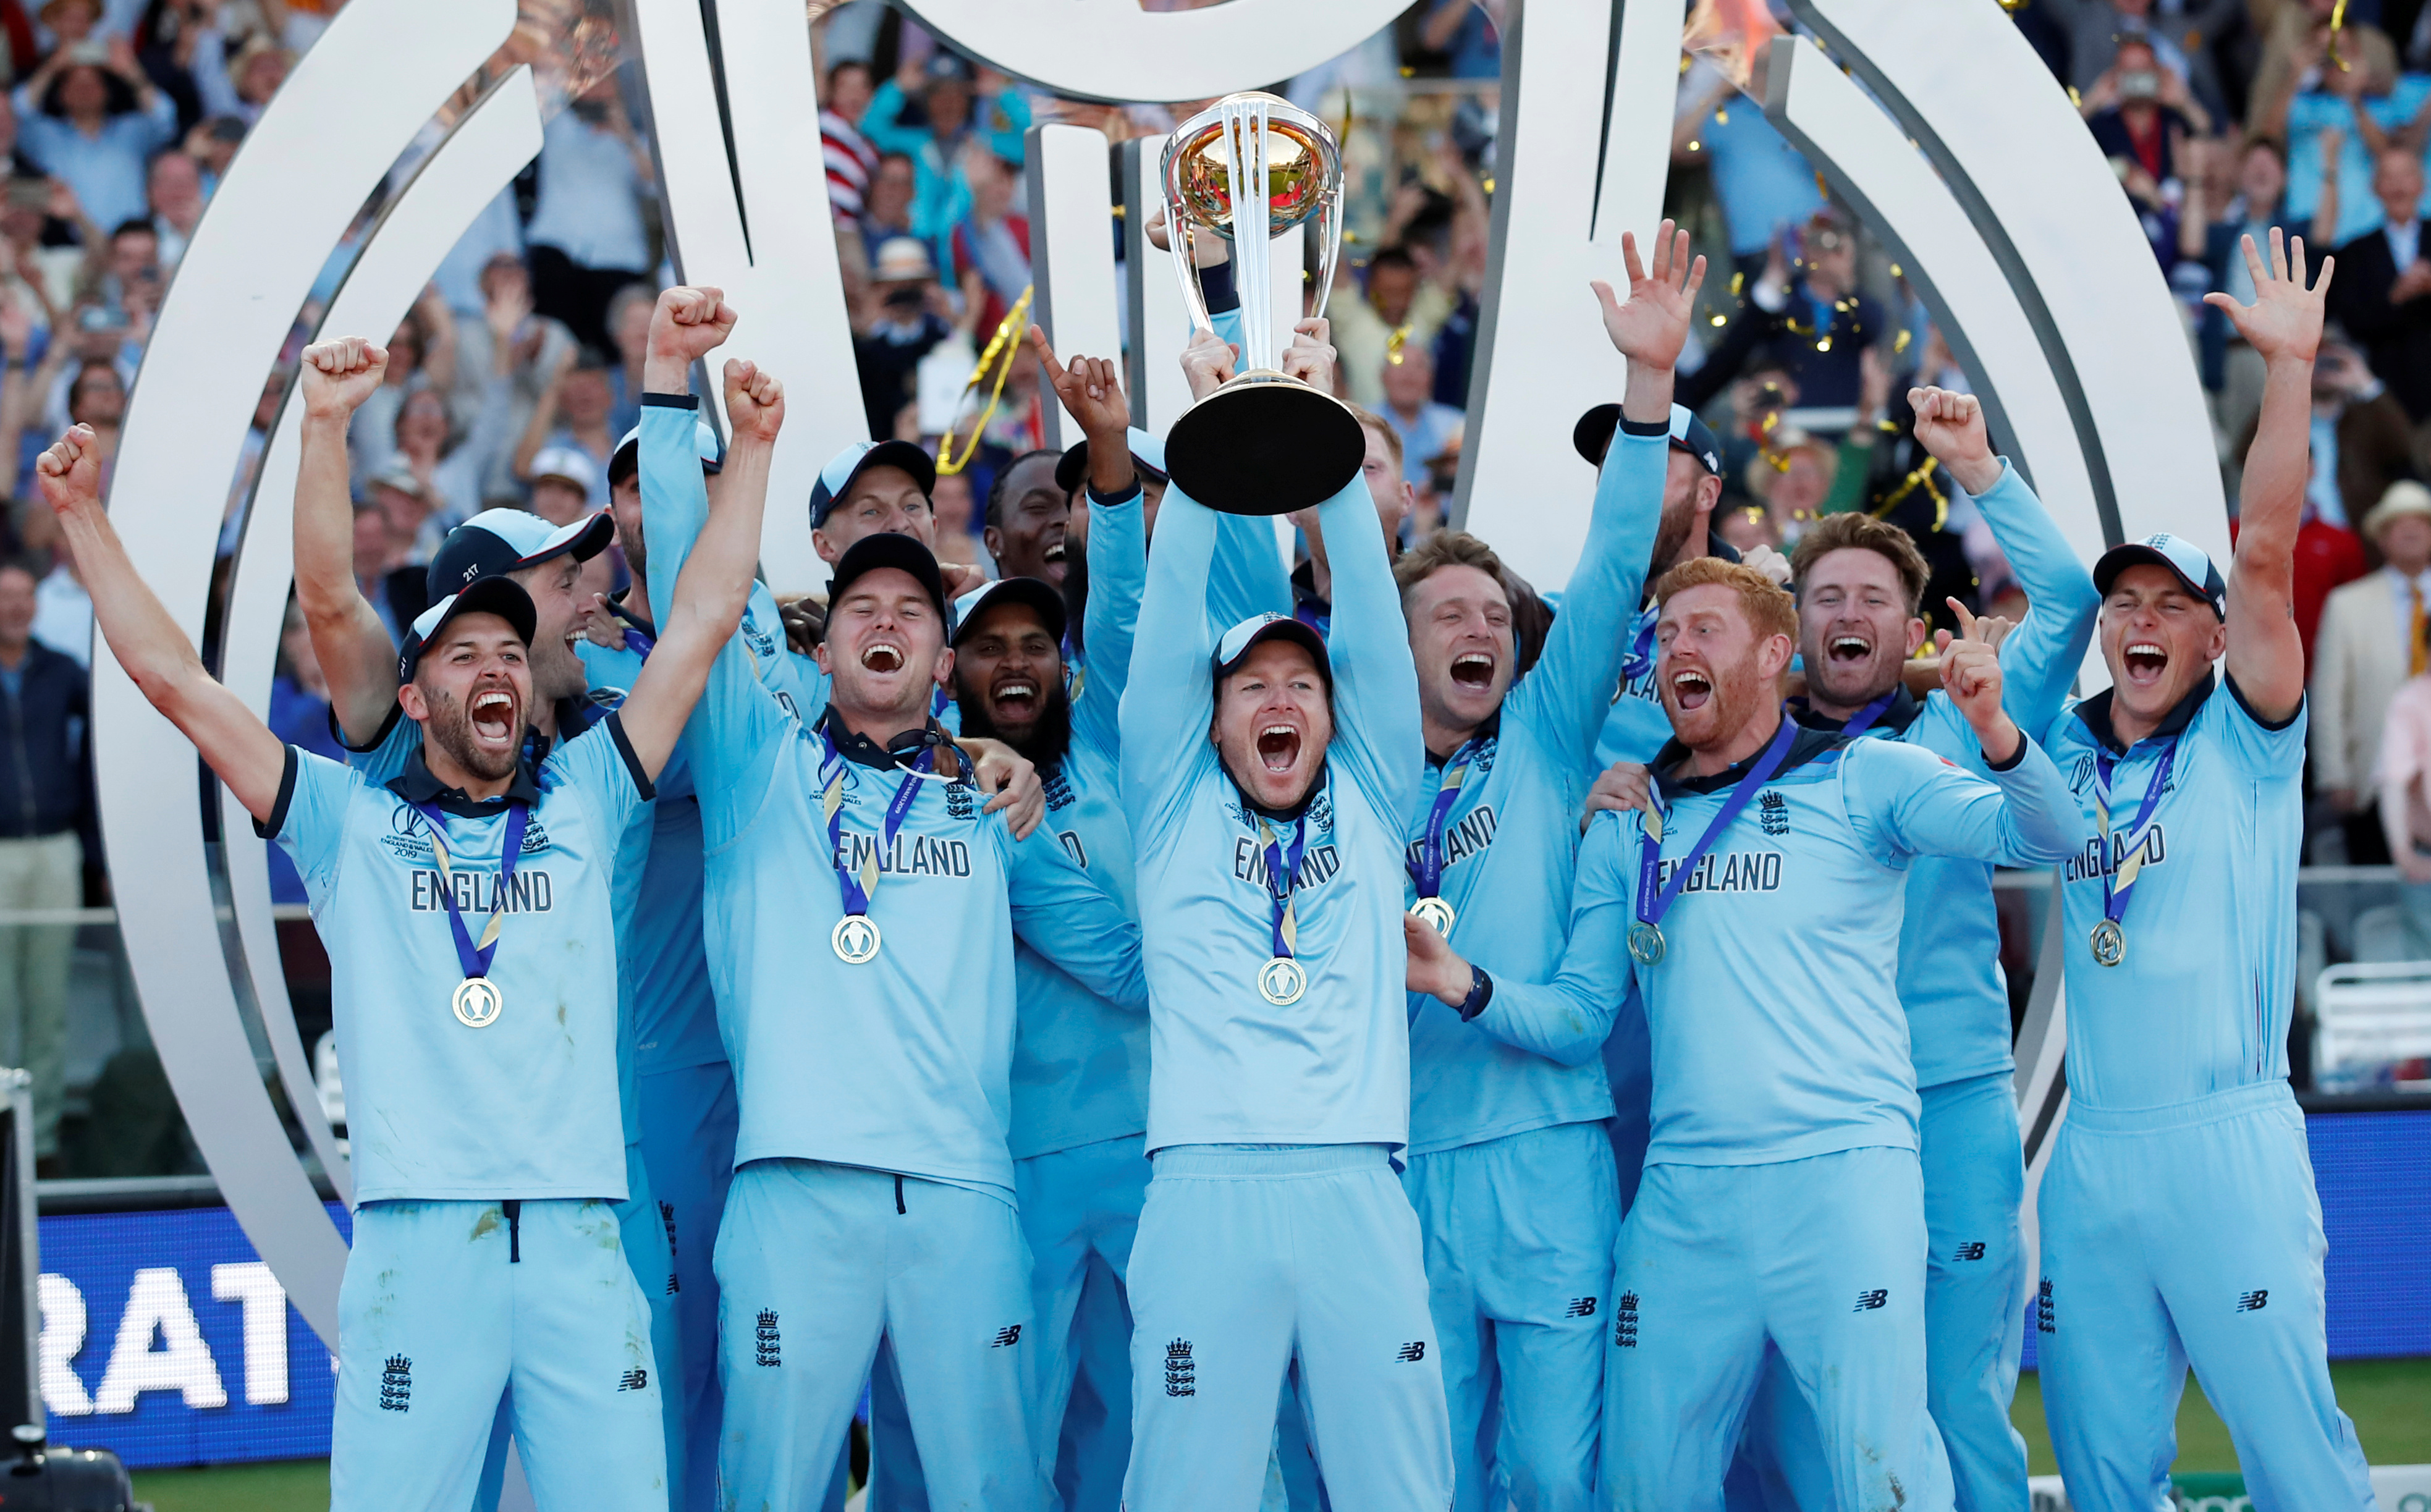 Cricket - ICC Cricket World Cup Final - New Zealand v England - Lord's, London, Britain - July 14, 2019   England's Eoin Morgan and team mates celebrate winning the world cup with the trophy       Action Images via Reuters/Andrew Boyers